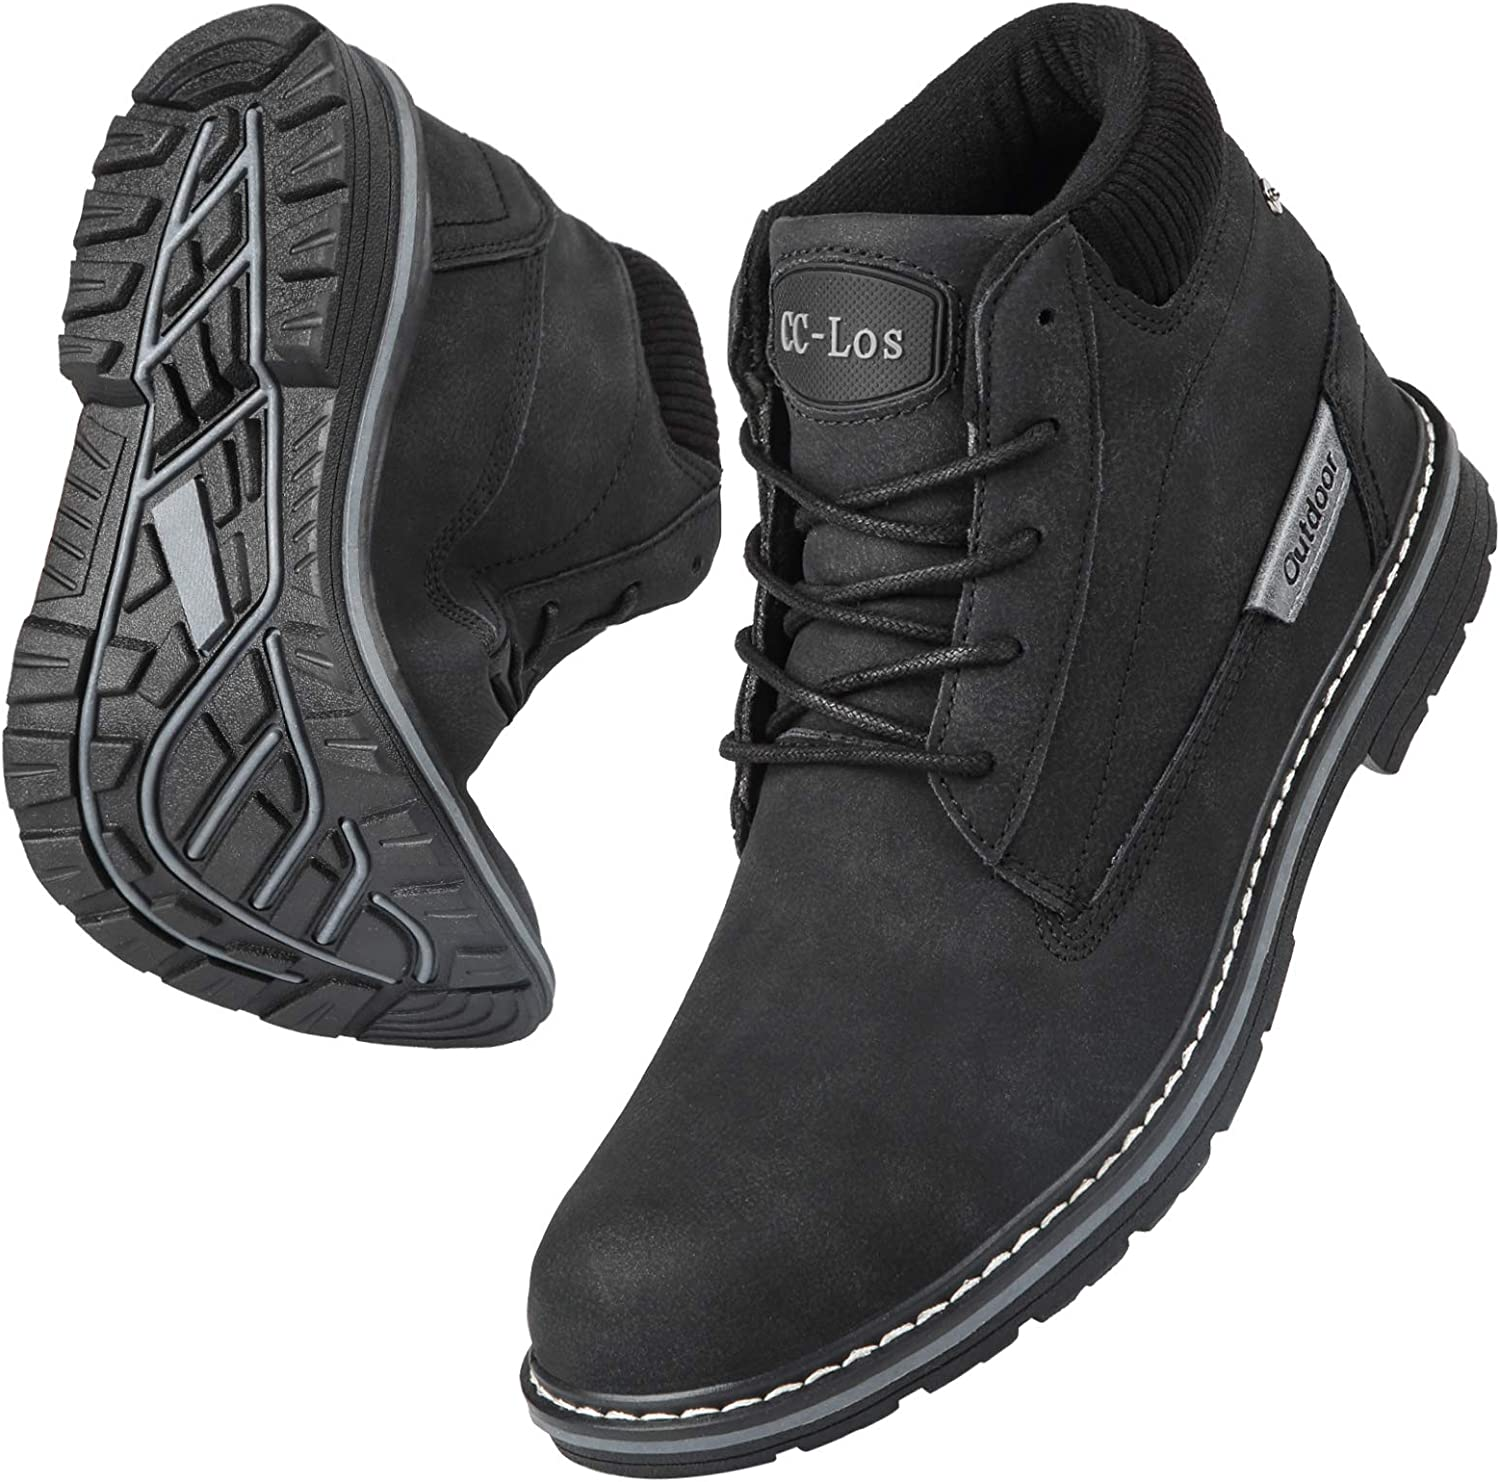 Men Boots Velvet Warm Ankle High Waterproof Hiking Outdoor Non-Slip Wear-Resistant Lightweight Sneakers Leather Shoes